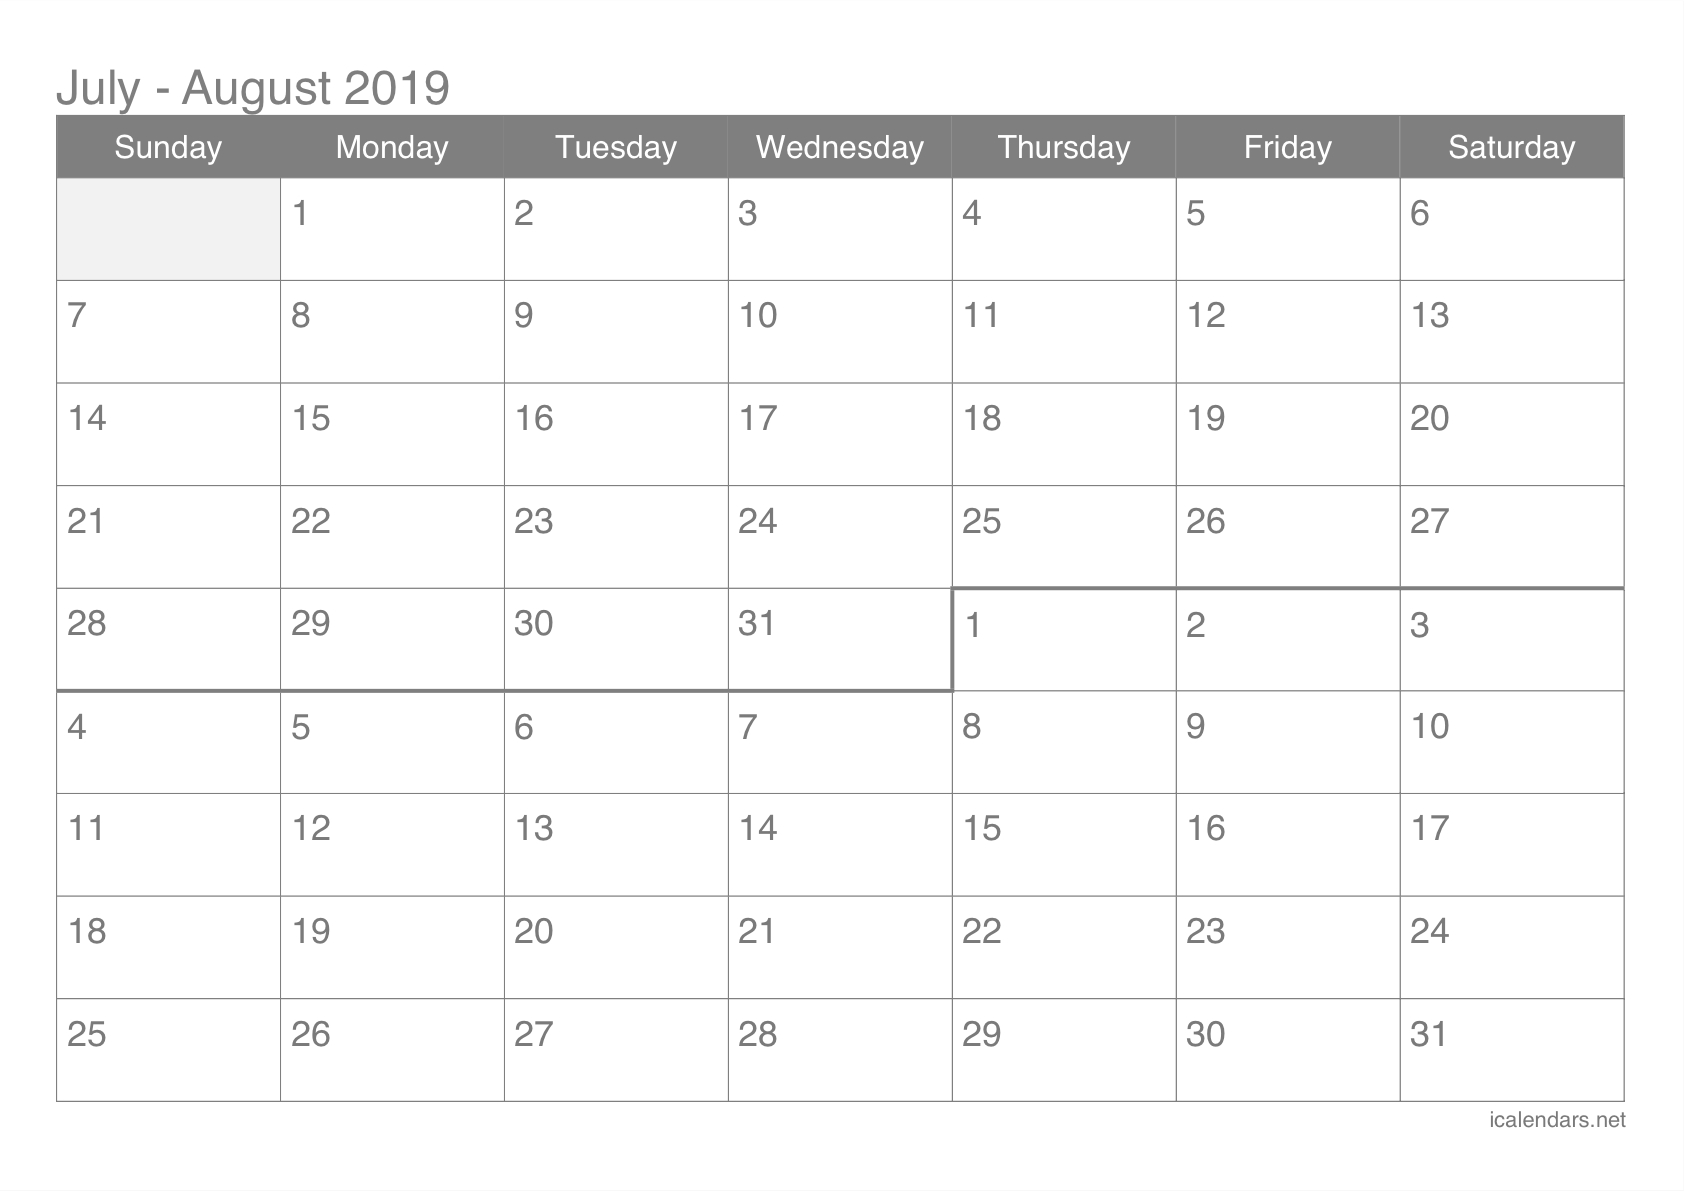 July And August 2019 Printable Calendar - Icalendars-Blank Printable June July Augest Calendars